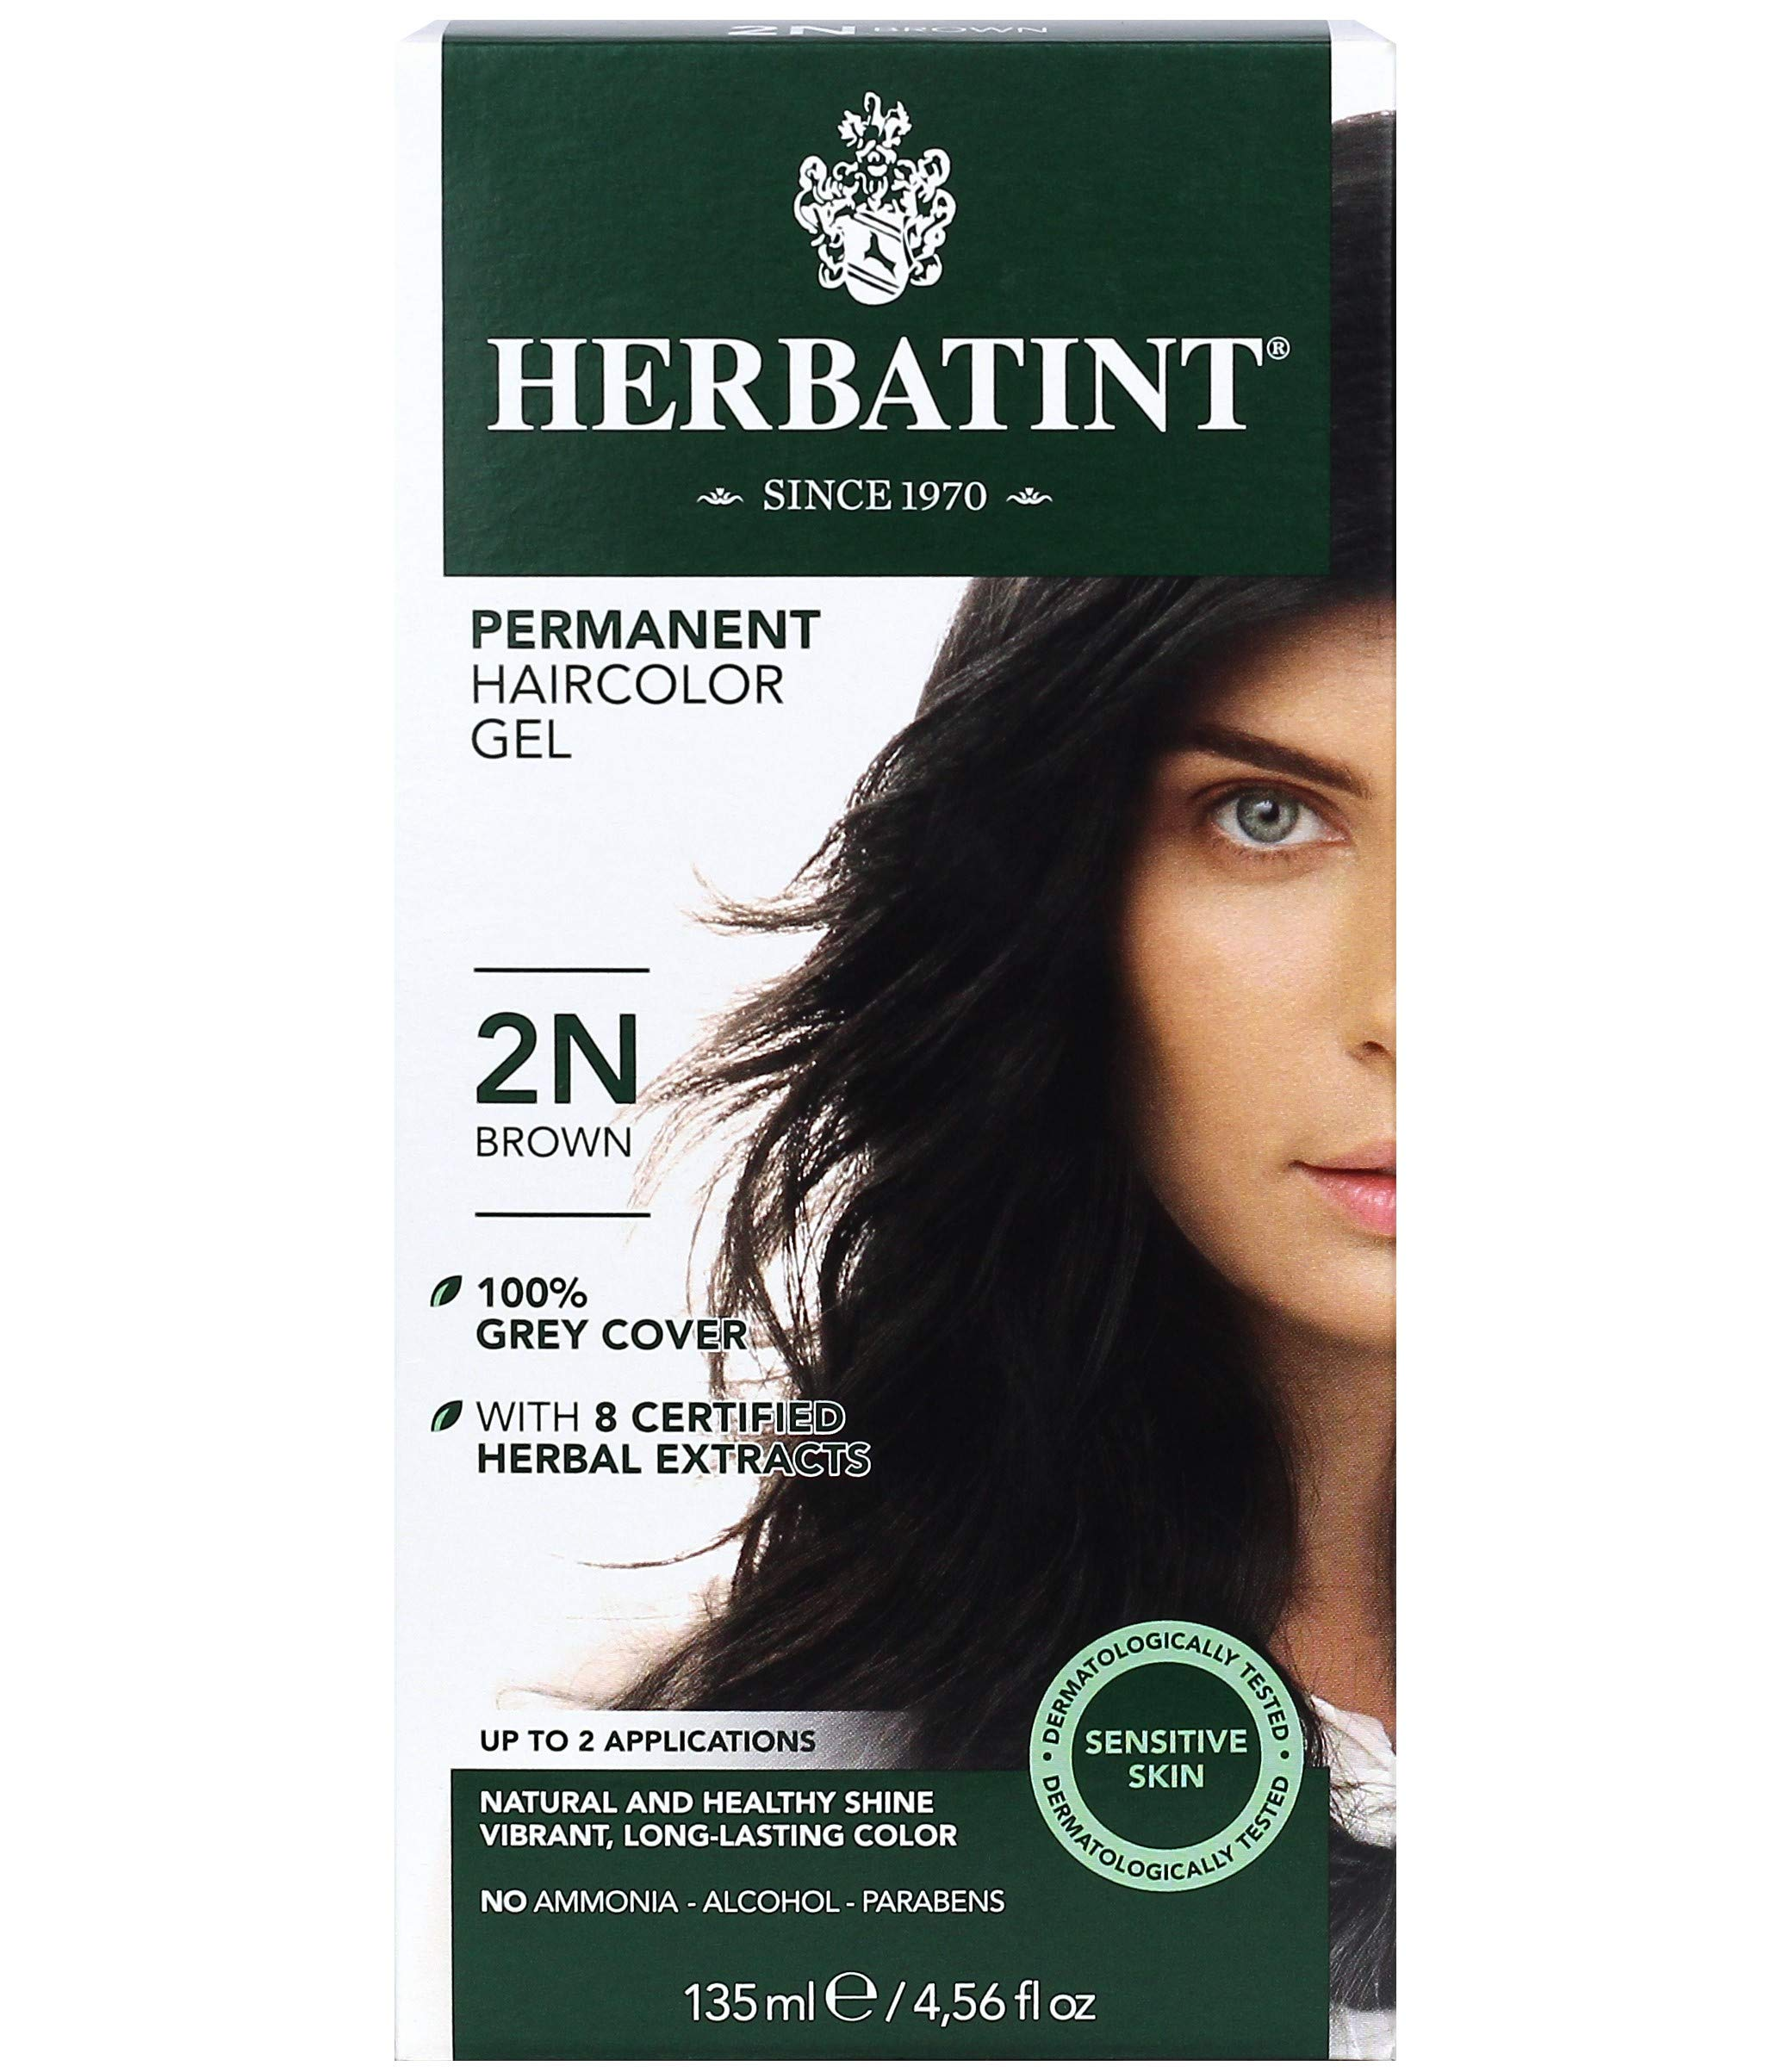 Herbatint Permanent Haircolor Gel, 2N Brown, 4.56 Ounce